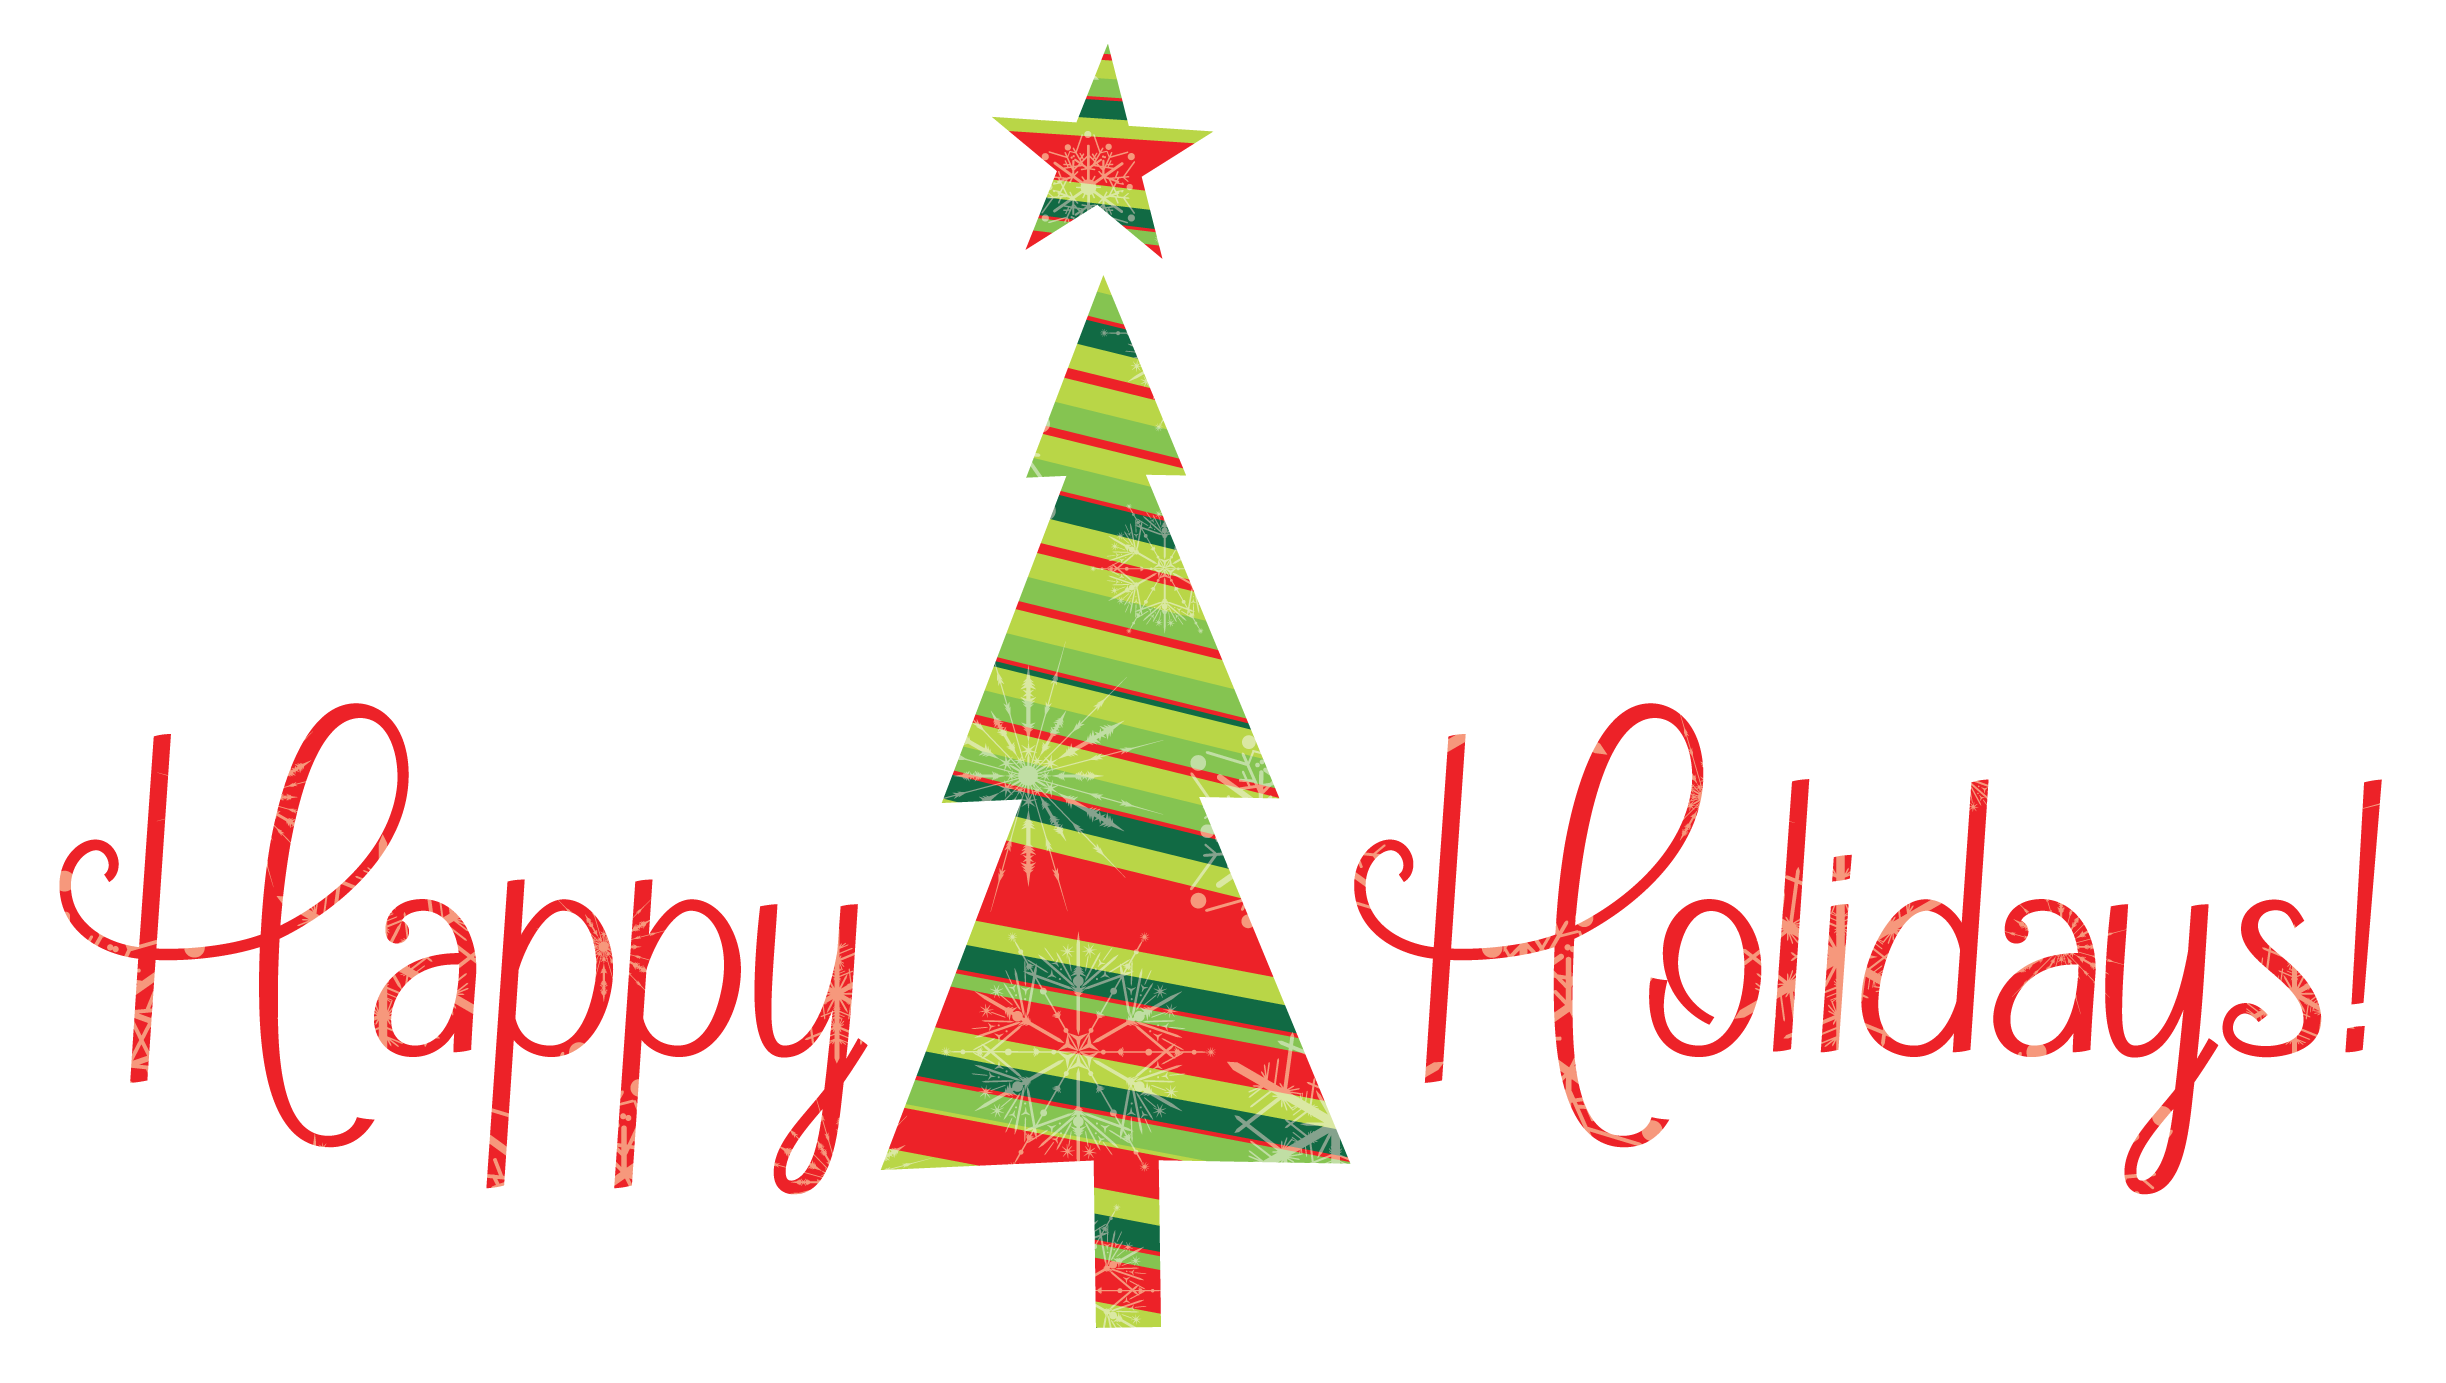 Free animated clipart happy holidays. Cliparts download clip art